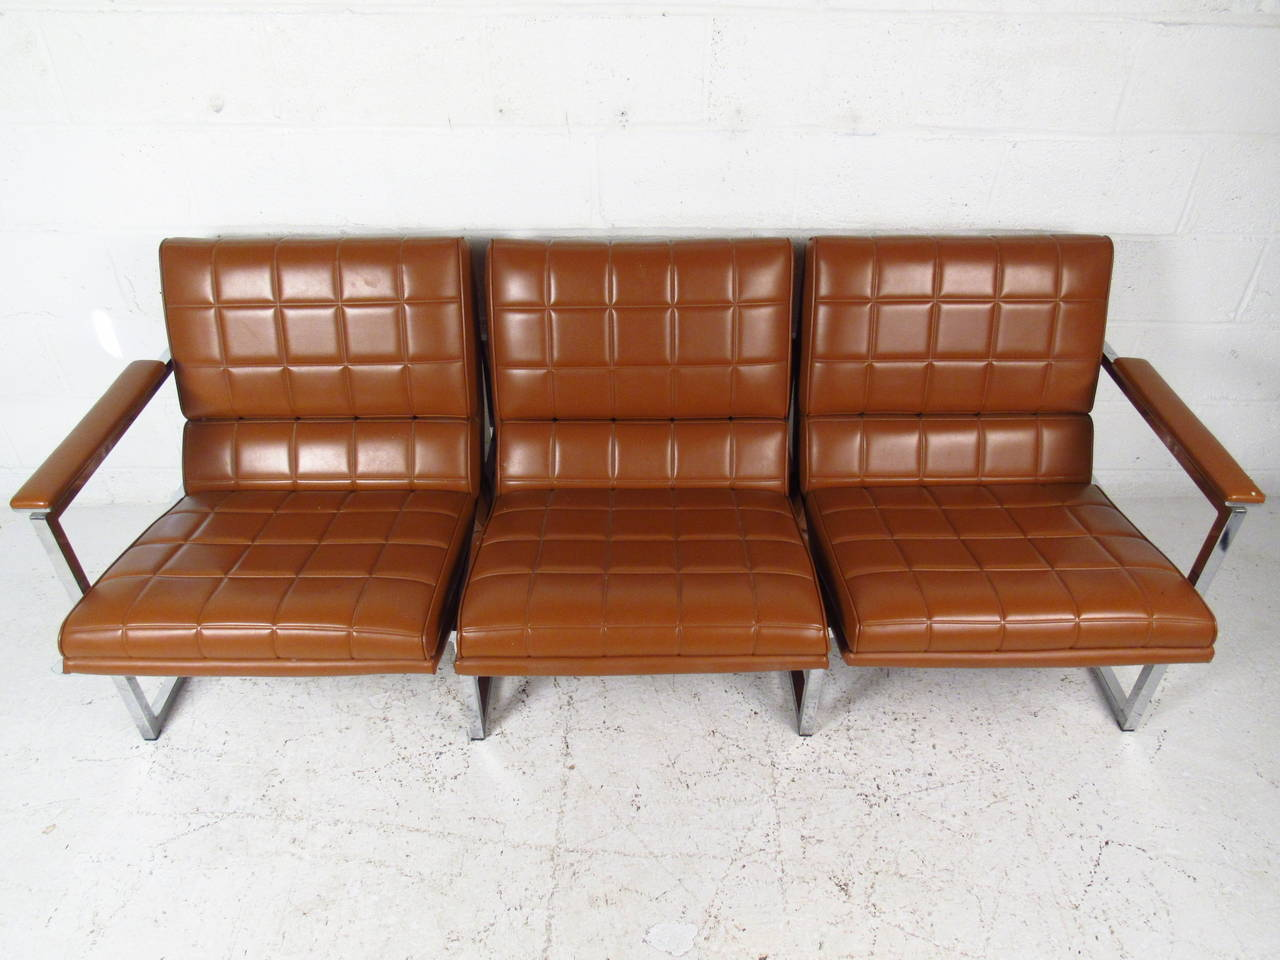 This beautiful vintage three-seat sofa features uniquely designed vinyl upholstery on a sturdy chrome frame. Padded armrests and waterfall style seat backs add to the charm of the piece, which makes a fantastic mid-century addition to any seating